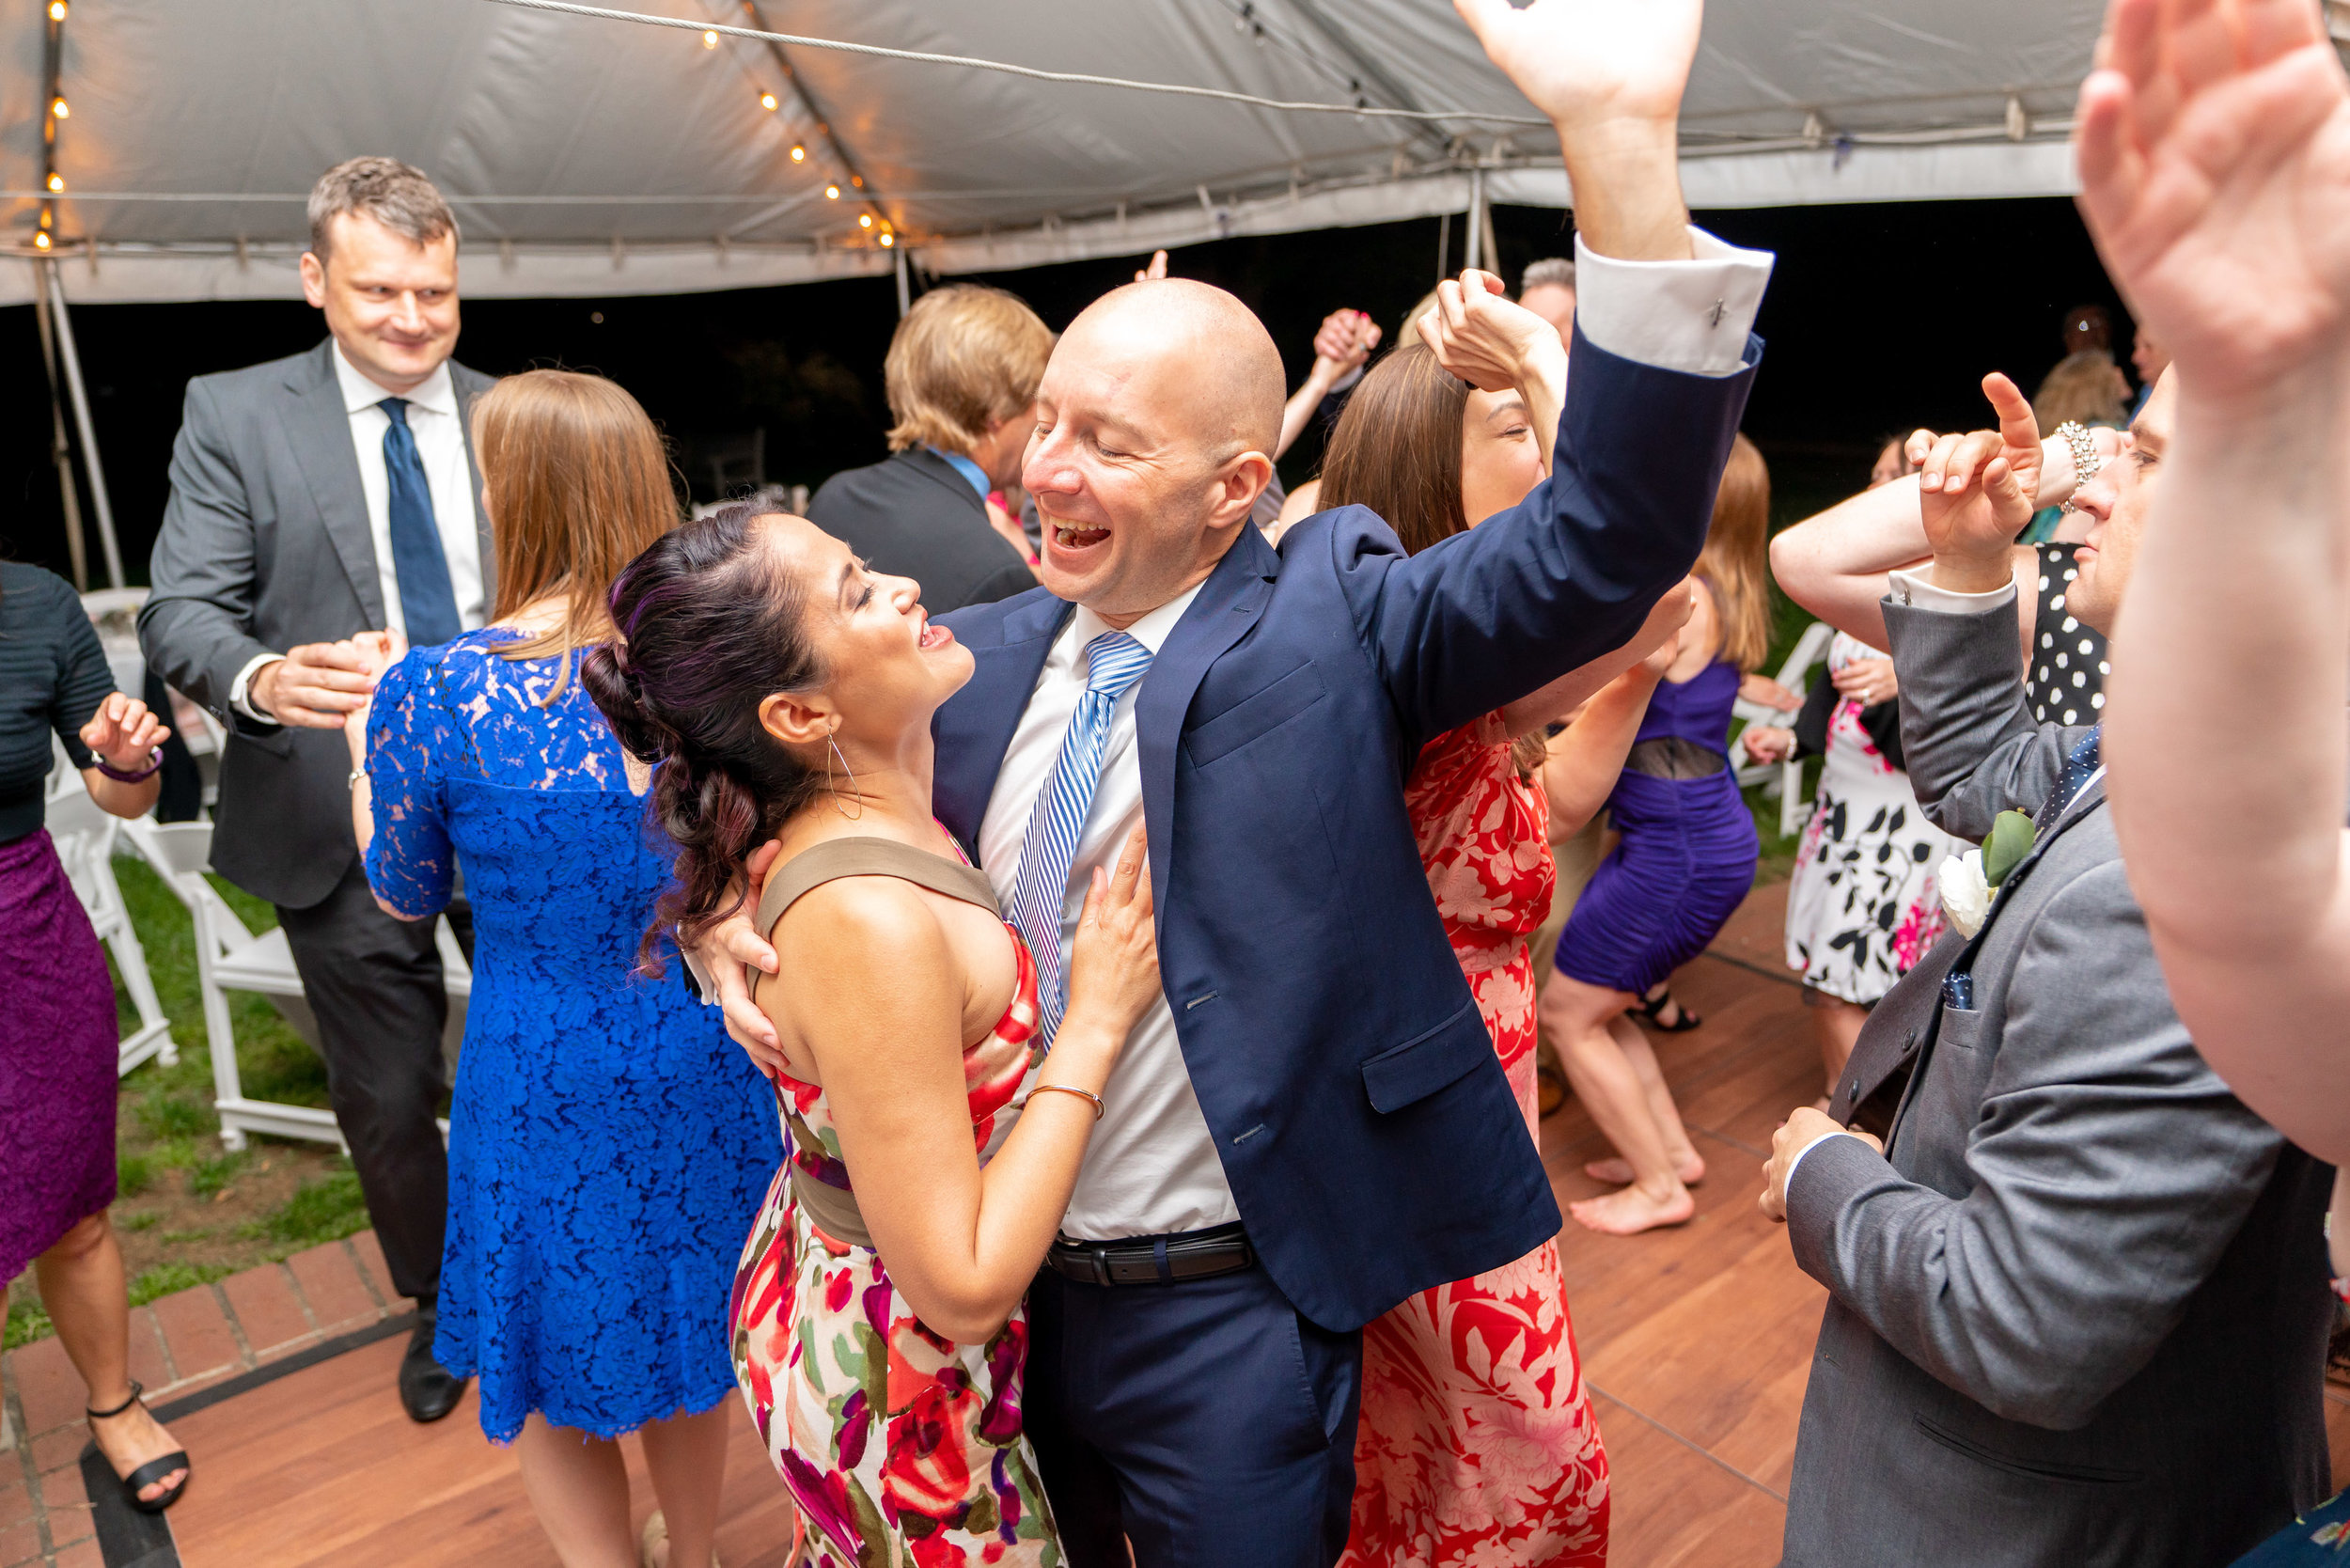 Amazing guests photo having a great time on the dance floor at Hendry House wedding